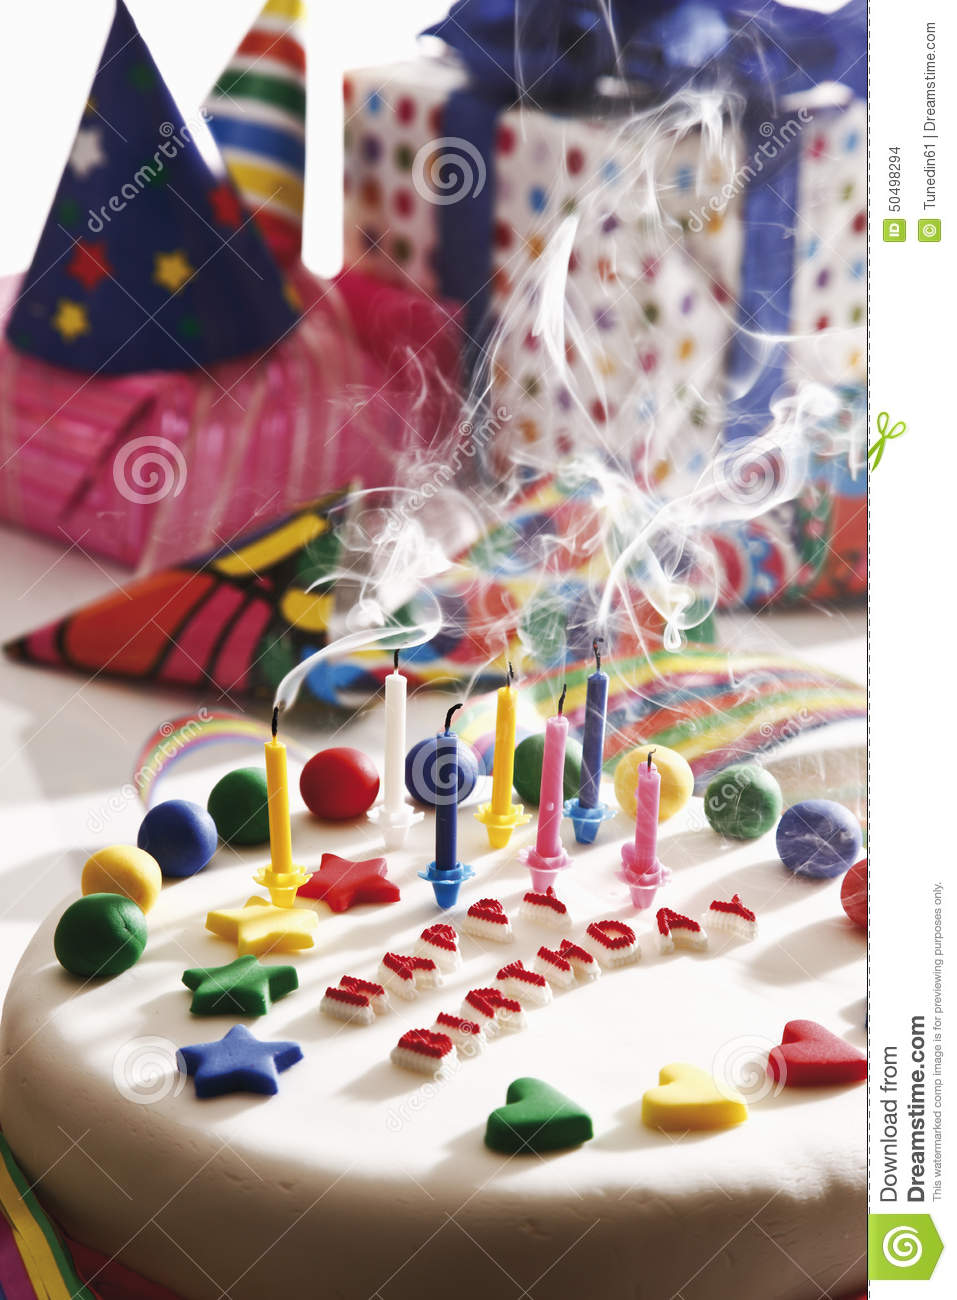 Marvelous Birthday Cake And Presents Stock Photo Image Of Decoration 50498294 Funny Birthday Cards Online Chimdamsfinfo